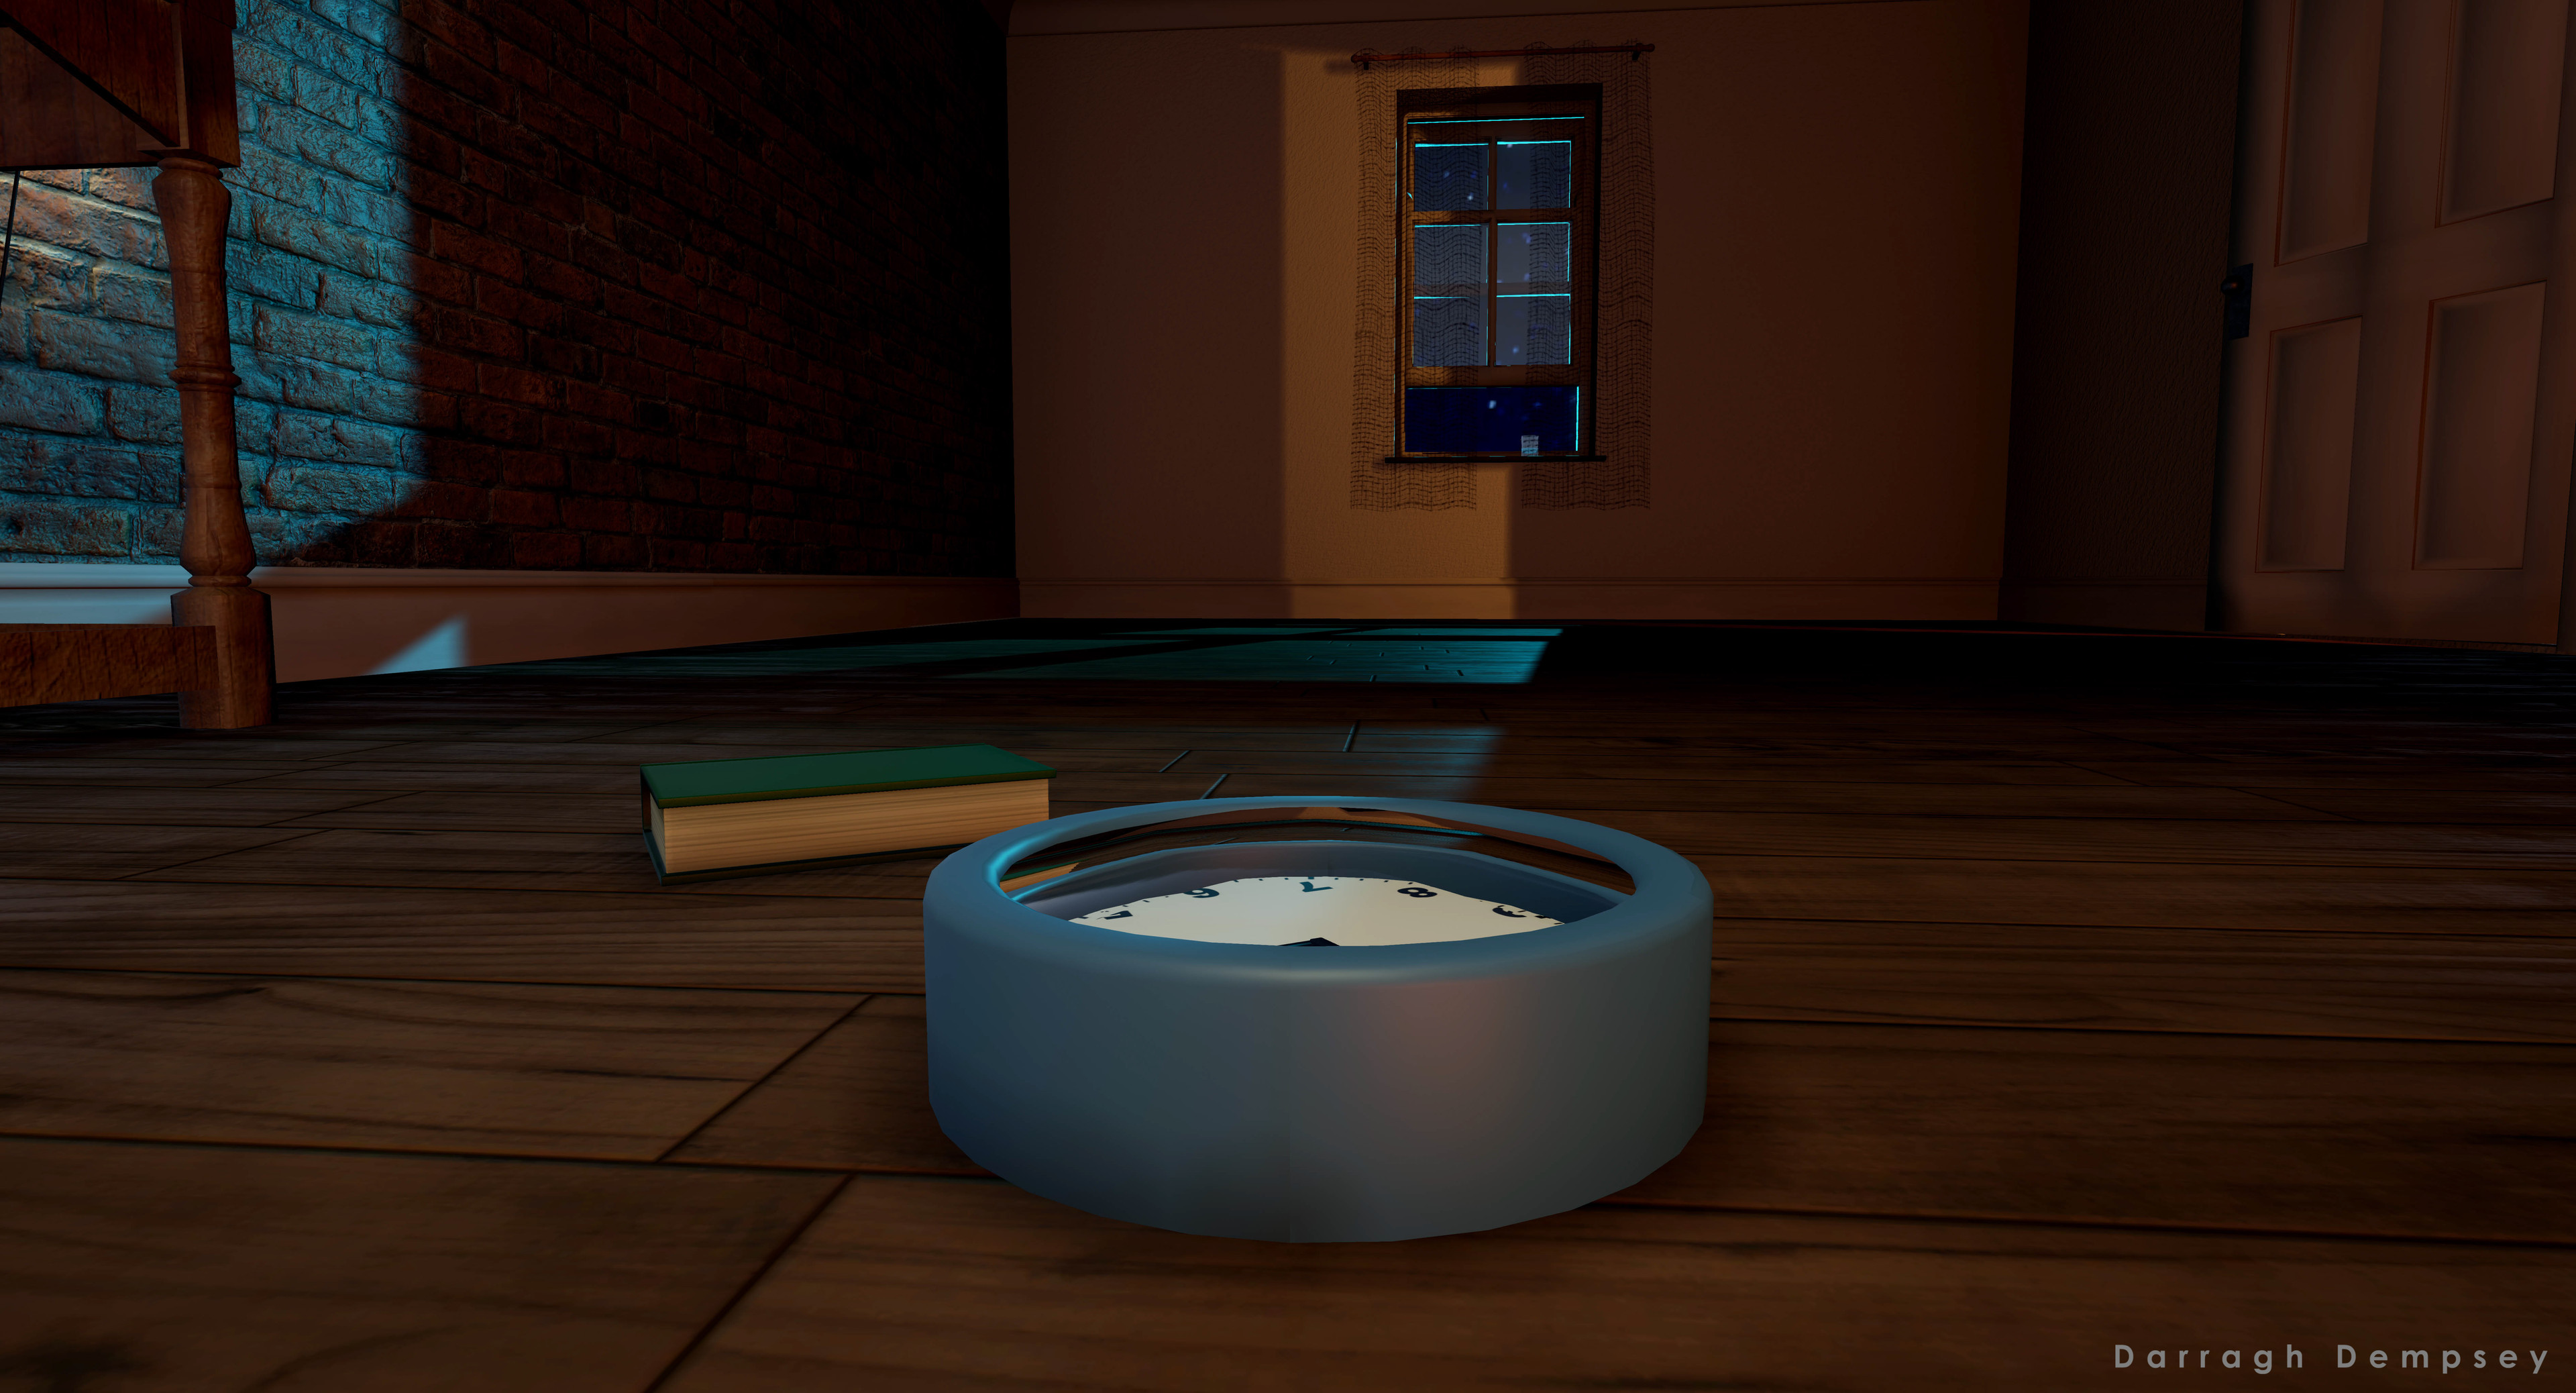 Clock and book. Unreal Engine screenshot.